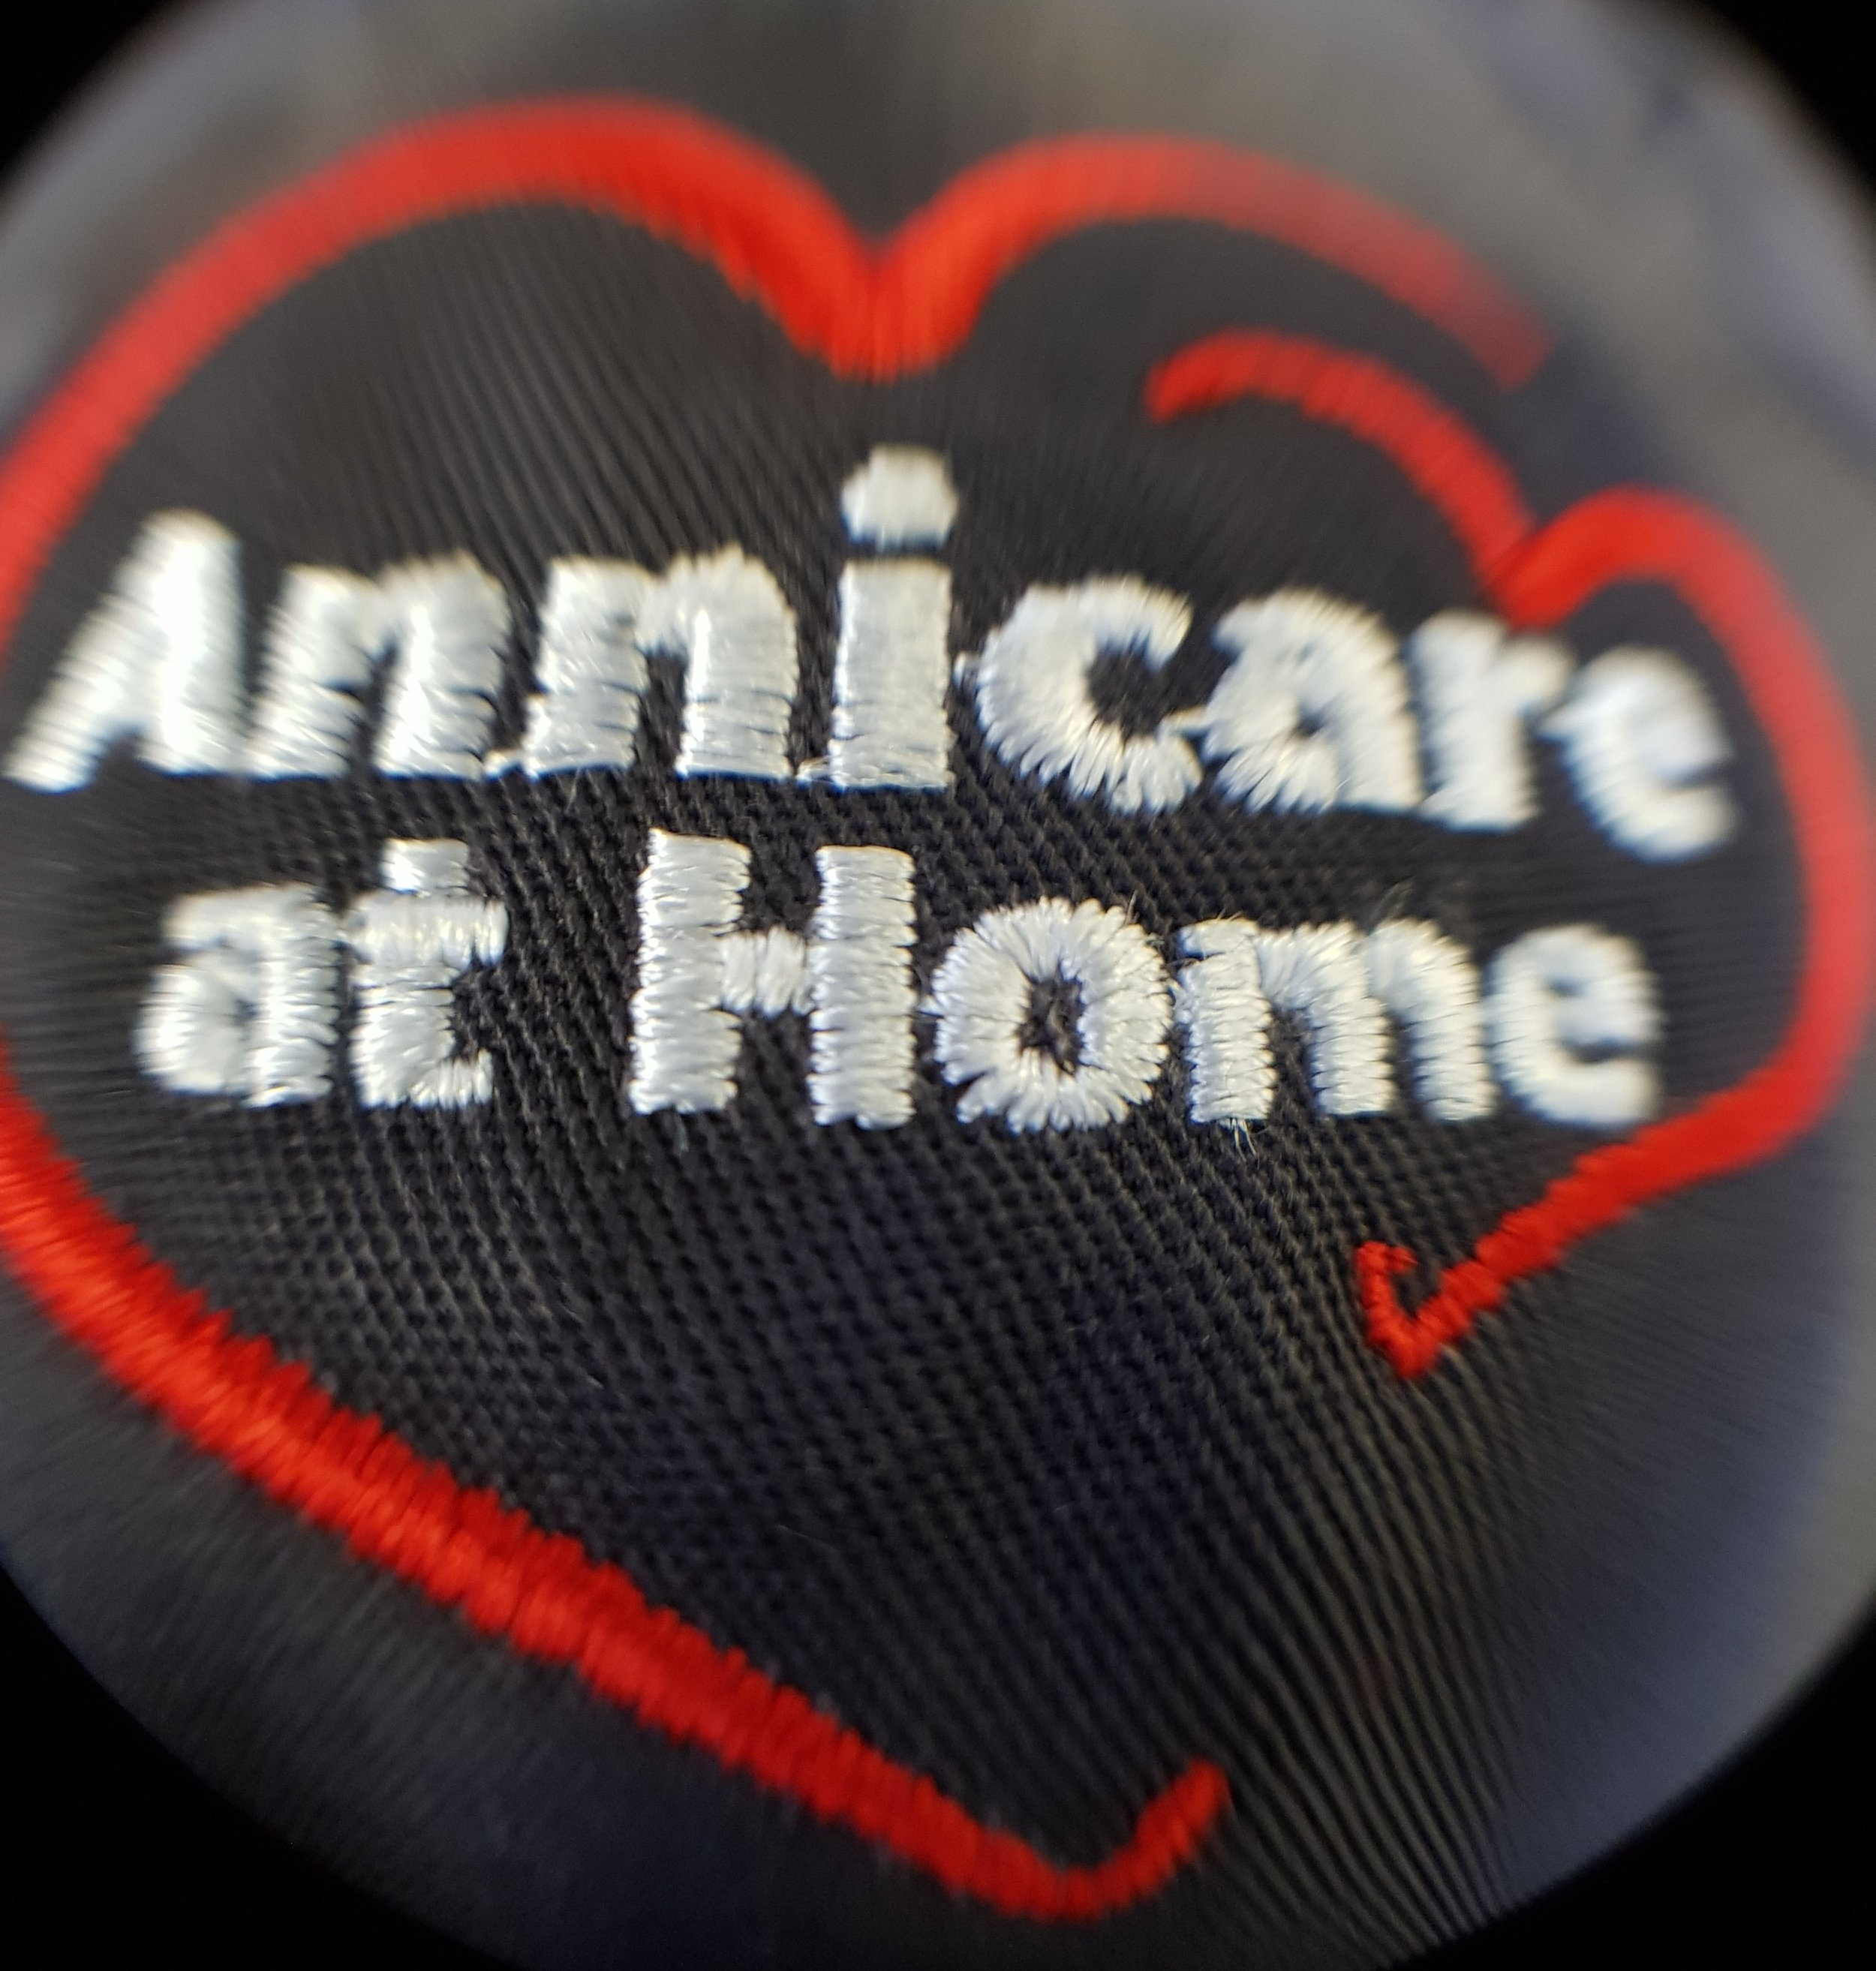 Annicare at Home - Complex & Nursing CareComplex or Nursing care, also referred to as long-term care or continuing care, is provided to patients with significant healthcare needs such as chronic illness, disabilities and ongoing medical needs. These healthcare needs could include brain damage, spinal cord injuries, multiple sclerosis, muscular dystrophy, ventilators and Gastrostomy feed needs such as PEG.Complex care requires the carer to be proficient in often complex & specific caring methods, which can be learnt, monitored and taught by our clinical team. As well as providing complex care, carers will also consider facilitating patients to lead independent, active, and fulfilled lives wherever & whenever possible.Domiciliary CareOften thought of as the traditional type of homecare of anything of 30mins and over to provide specific timed care or support throughout the day. Whether it be to assist with medication, personal care or just a little bit of help with your meal times Annicare can support you or a loved one. Trained staff will be on hand to support you when you when you need it.